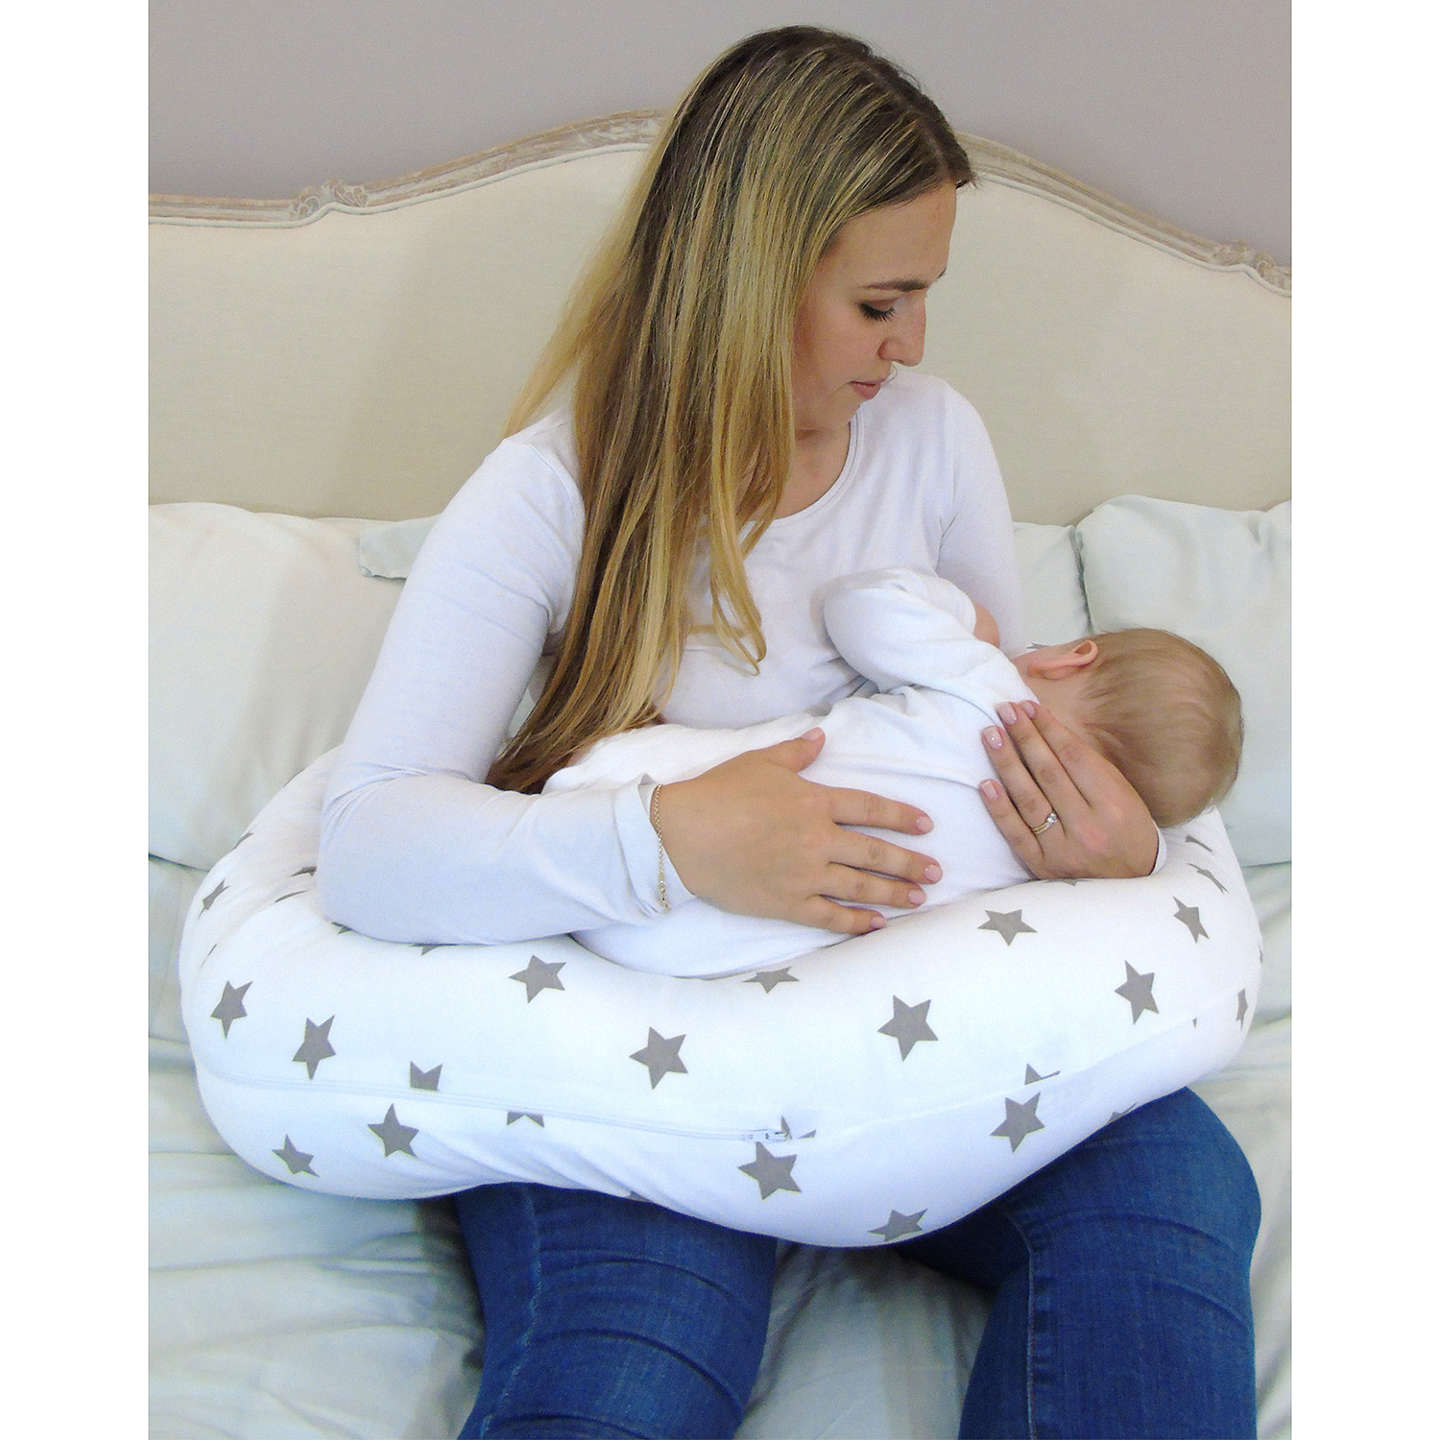 BuyWidgey Plus Multi-Use Pregnancy & Sleep Pillow, Silver Star Online at johnlewis.com